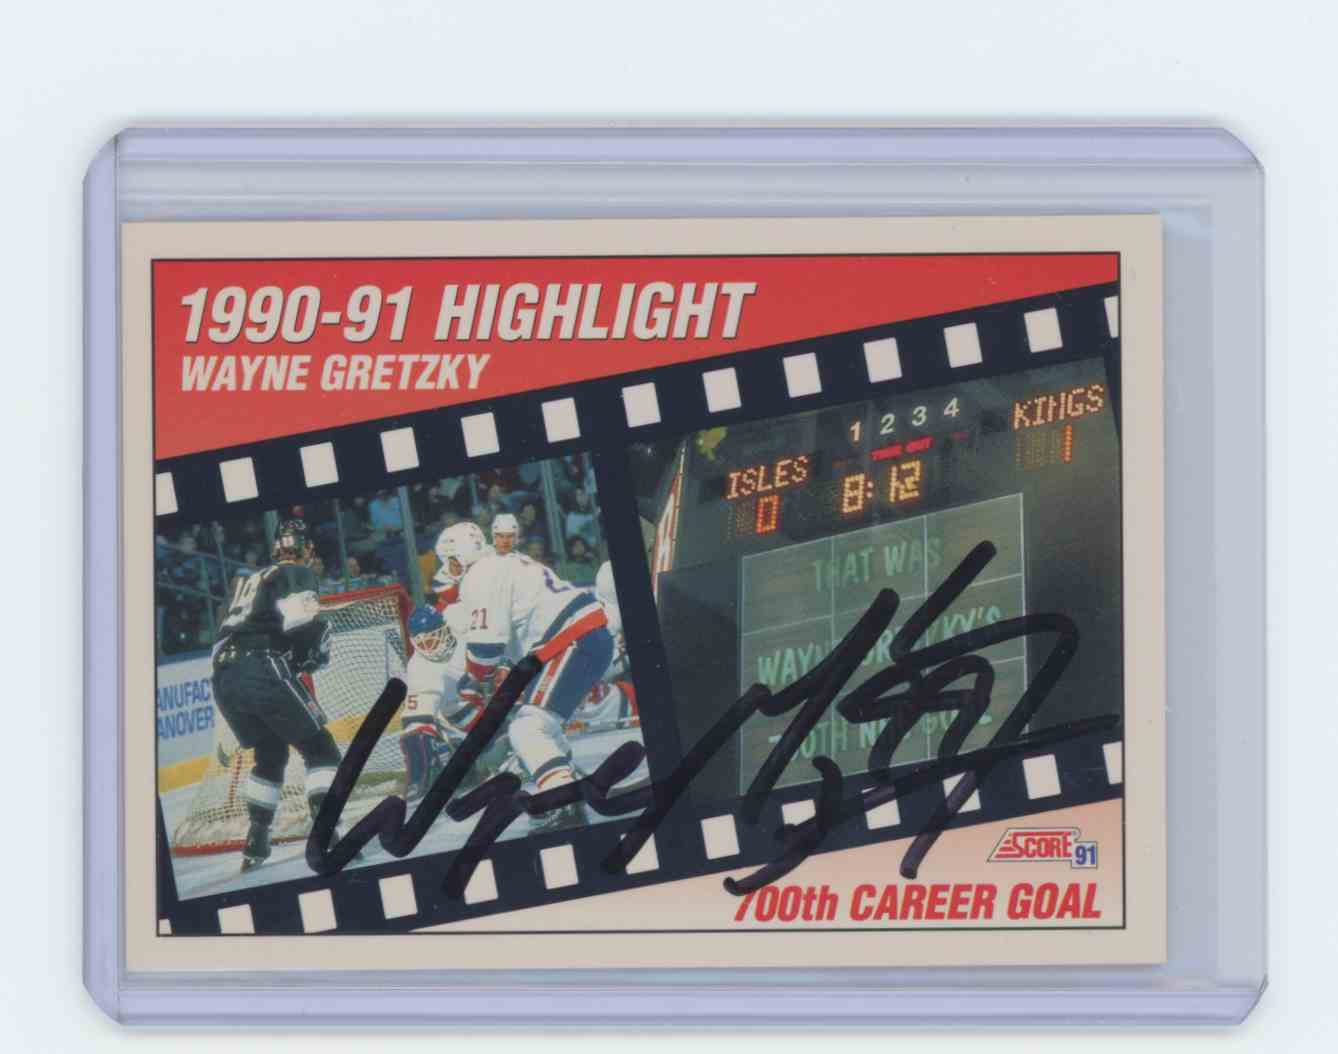 1991 1991-92 Score #413 Wayne Gretzky Los Angeles Kings Season Highlight Auto Wayne Gretzky #413 card front image